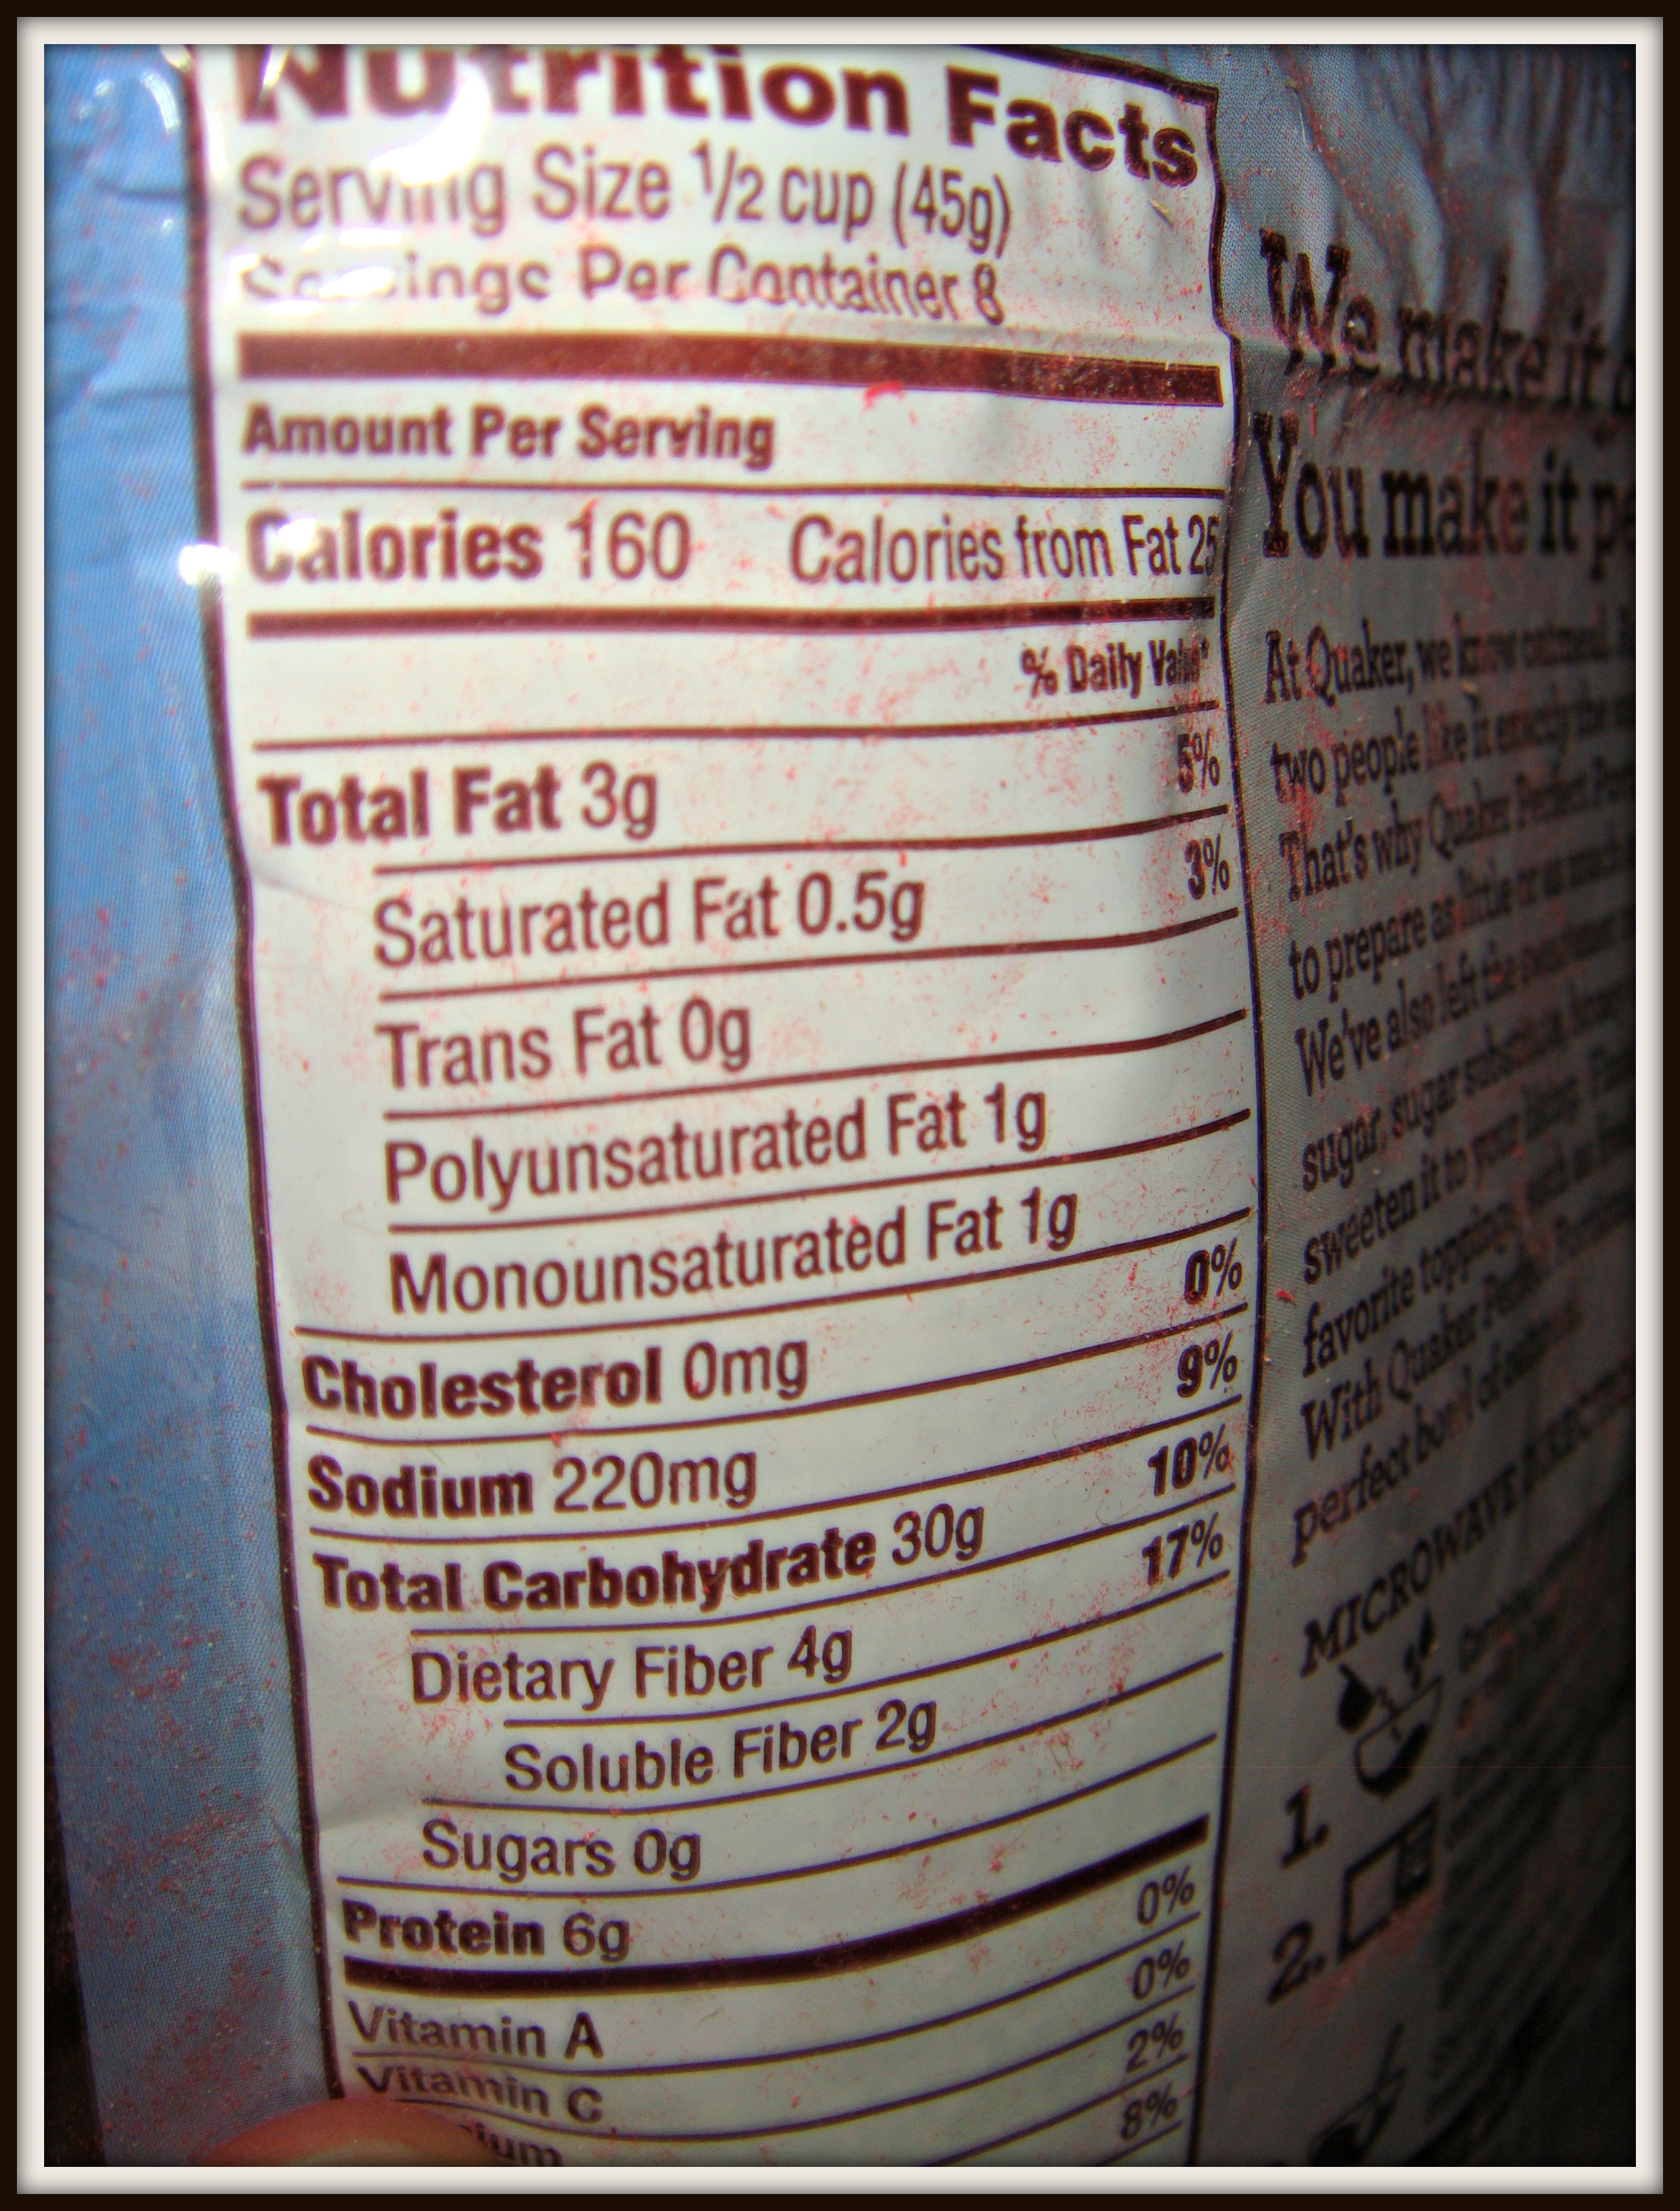 nutritional facts oatsQuaker Oats Nutrition Facts